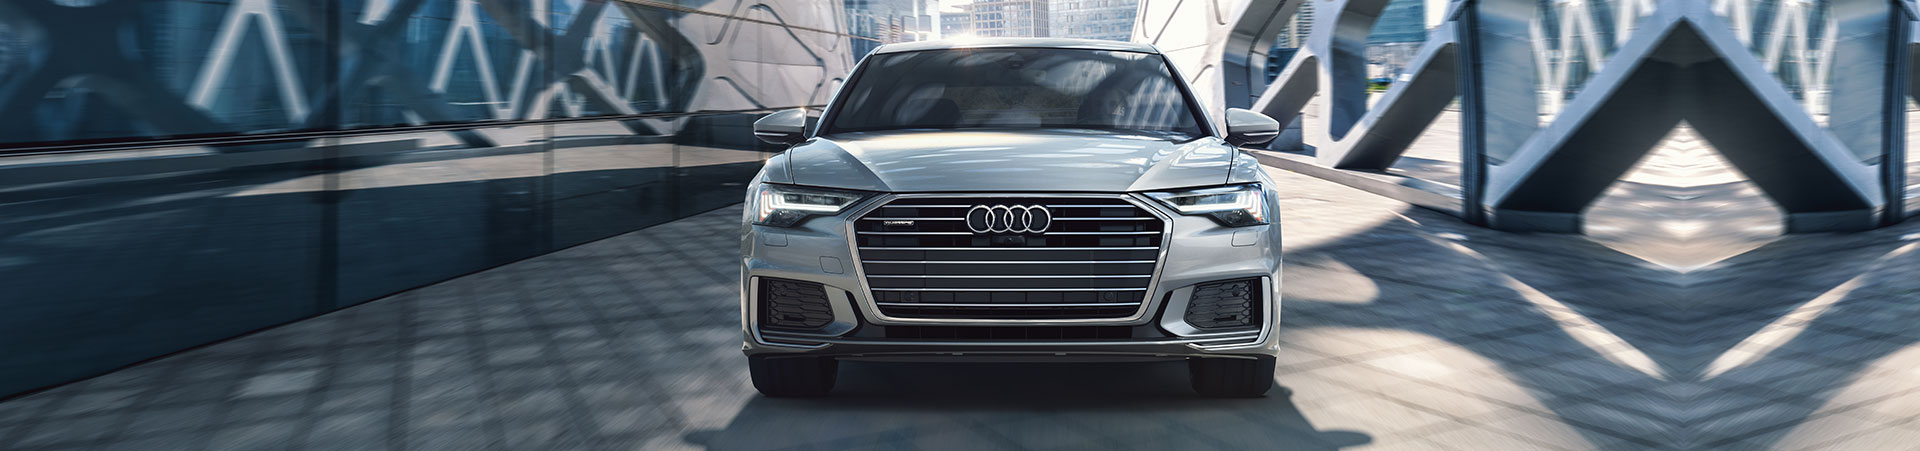 Oil change service is available at our Audi dealership Service Center in Oklahoma City, OK.y